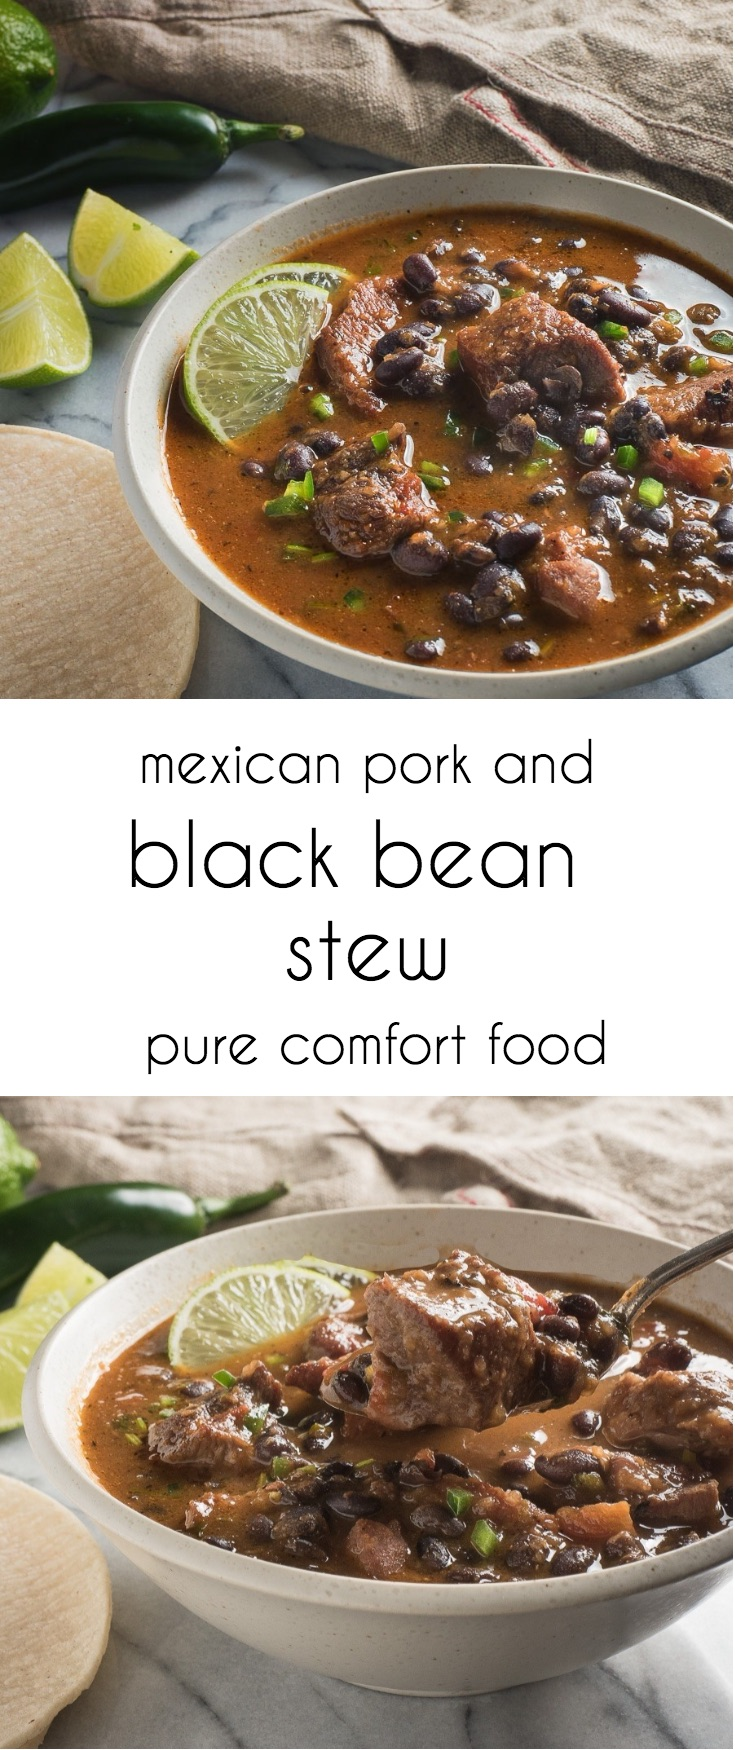 Mexican pork and black bean stew is a deeply satisfying crowd pleaser.